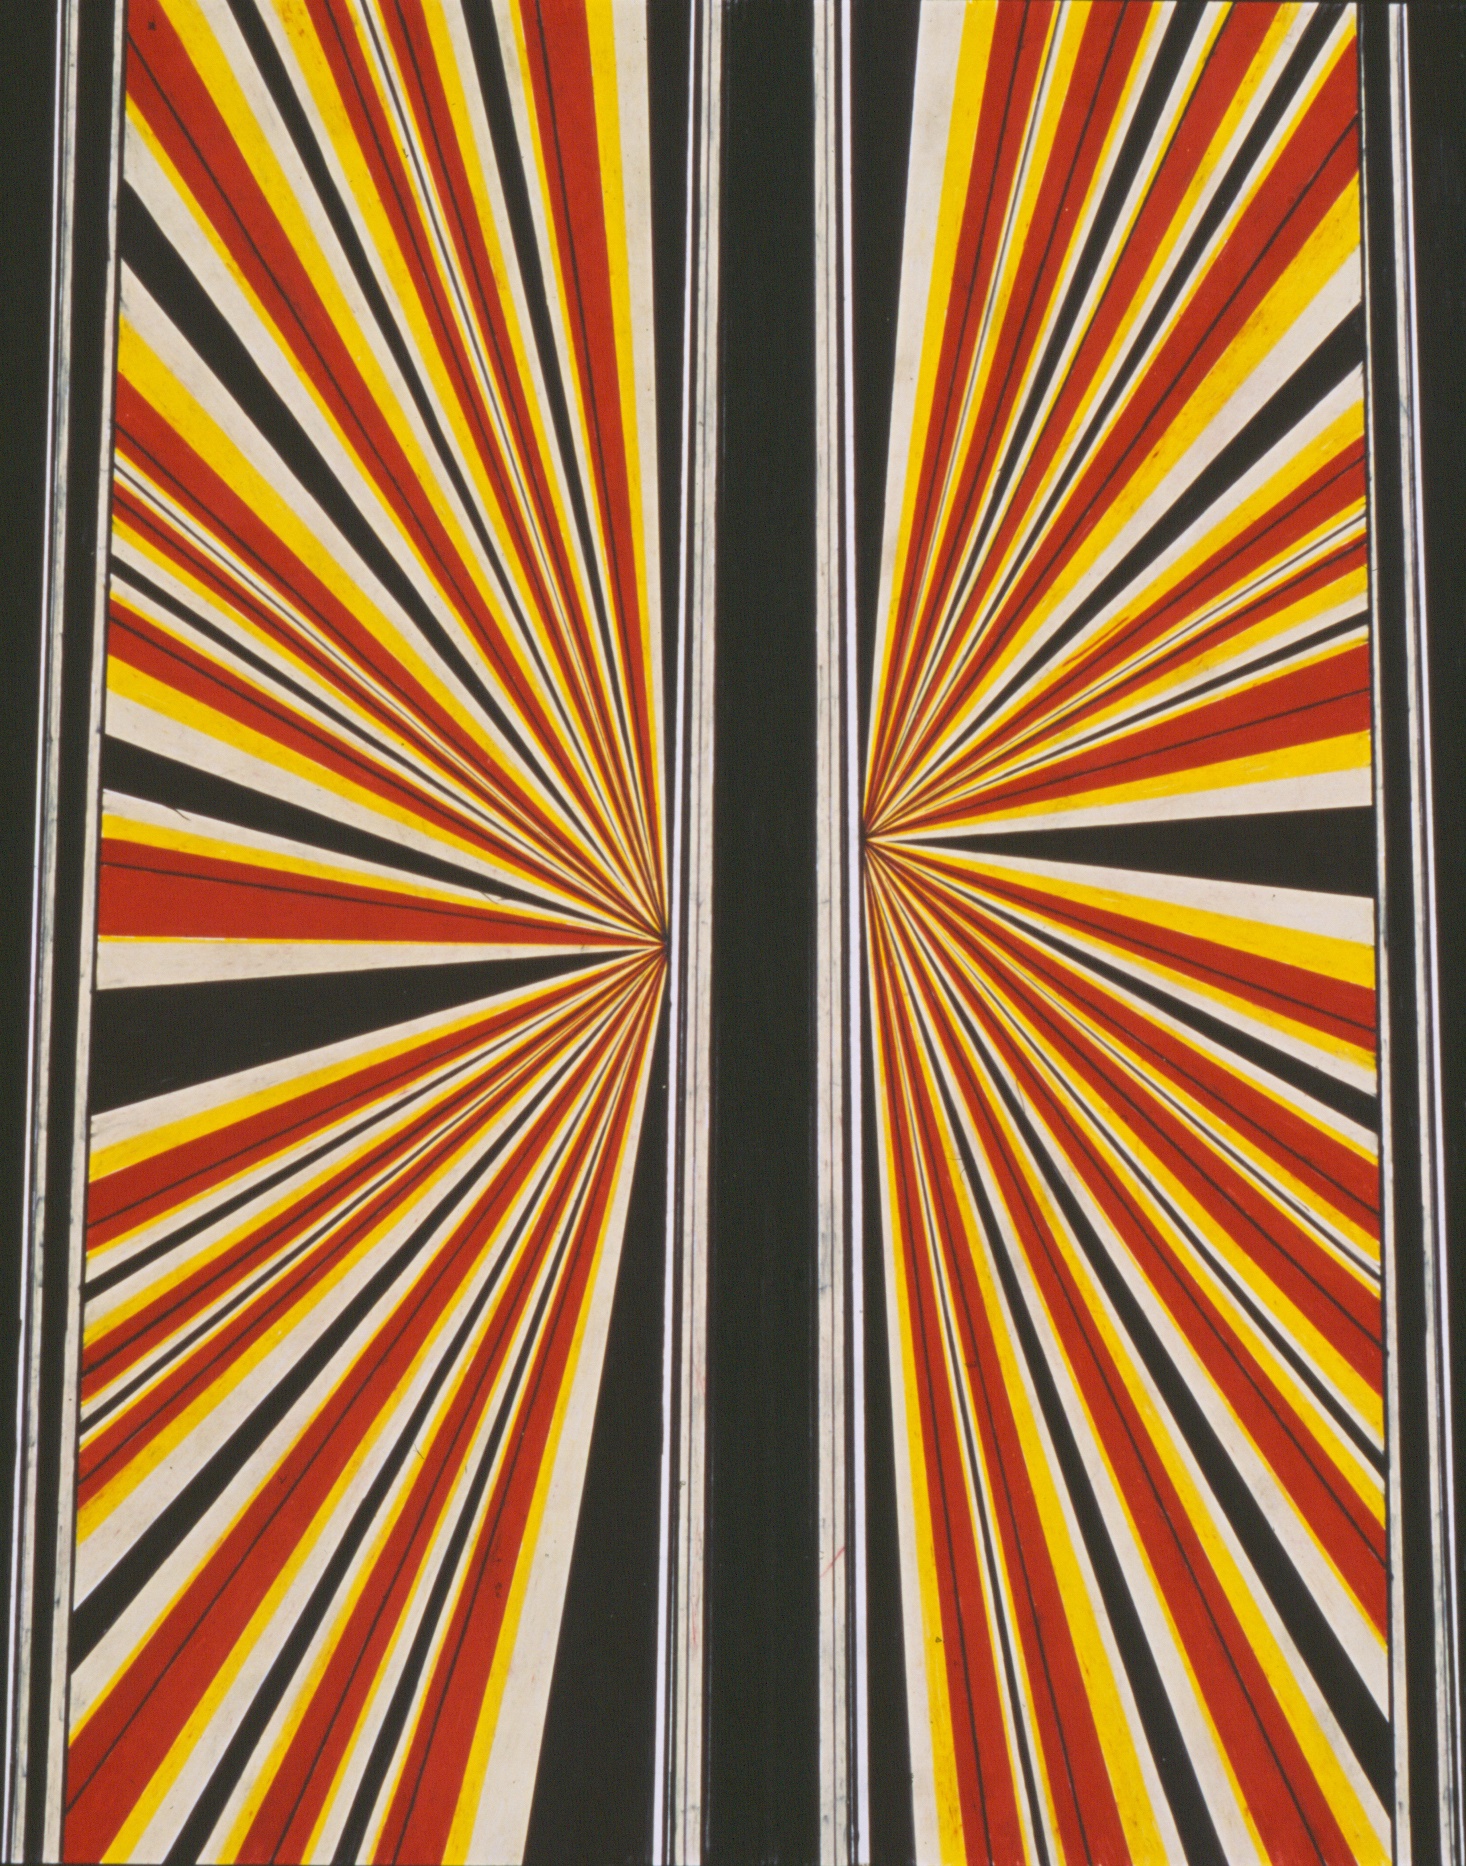 Mark Grotjahn Untitled 2002 Colored pencil on paper 24 x 19 in (60.96h x 48.26w cm) MG985